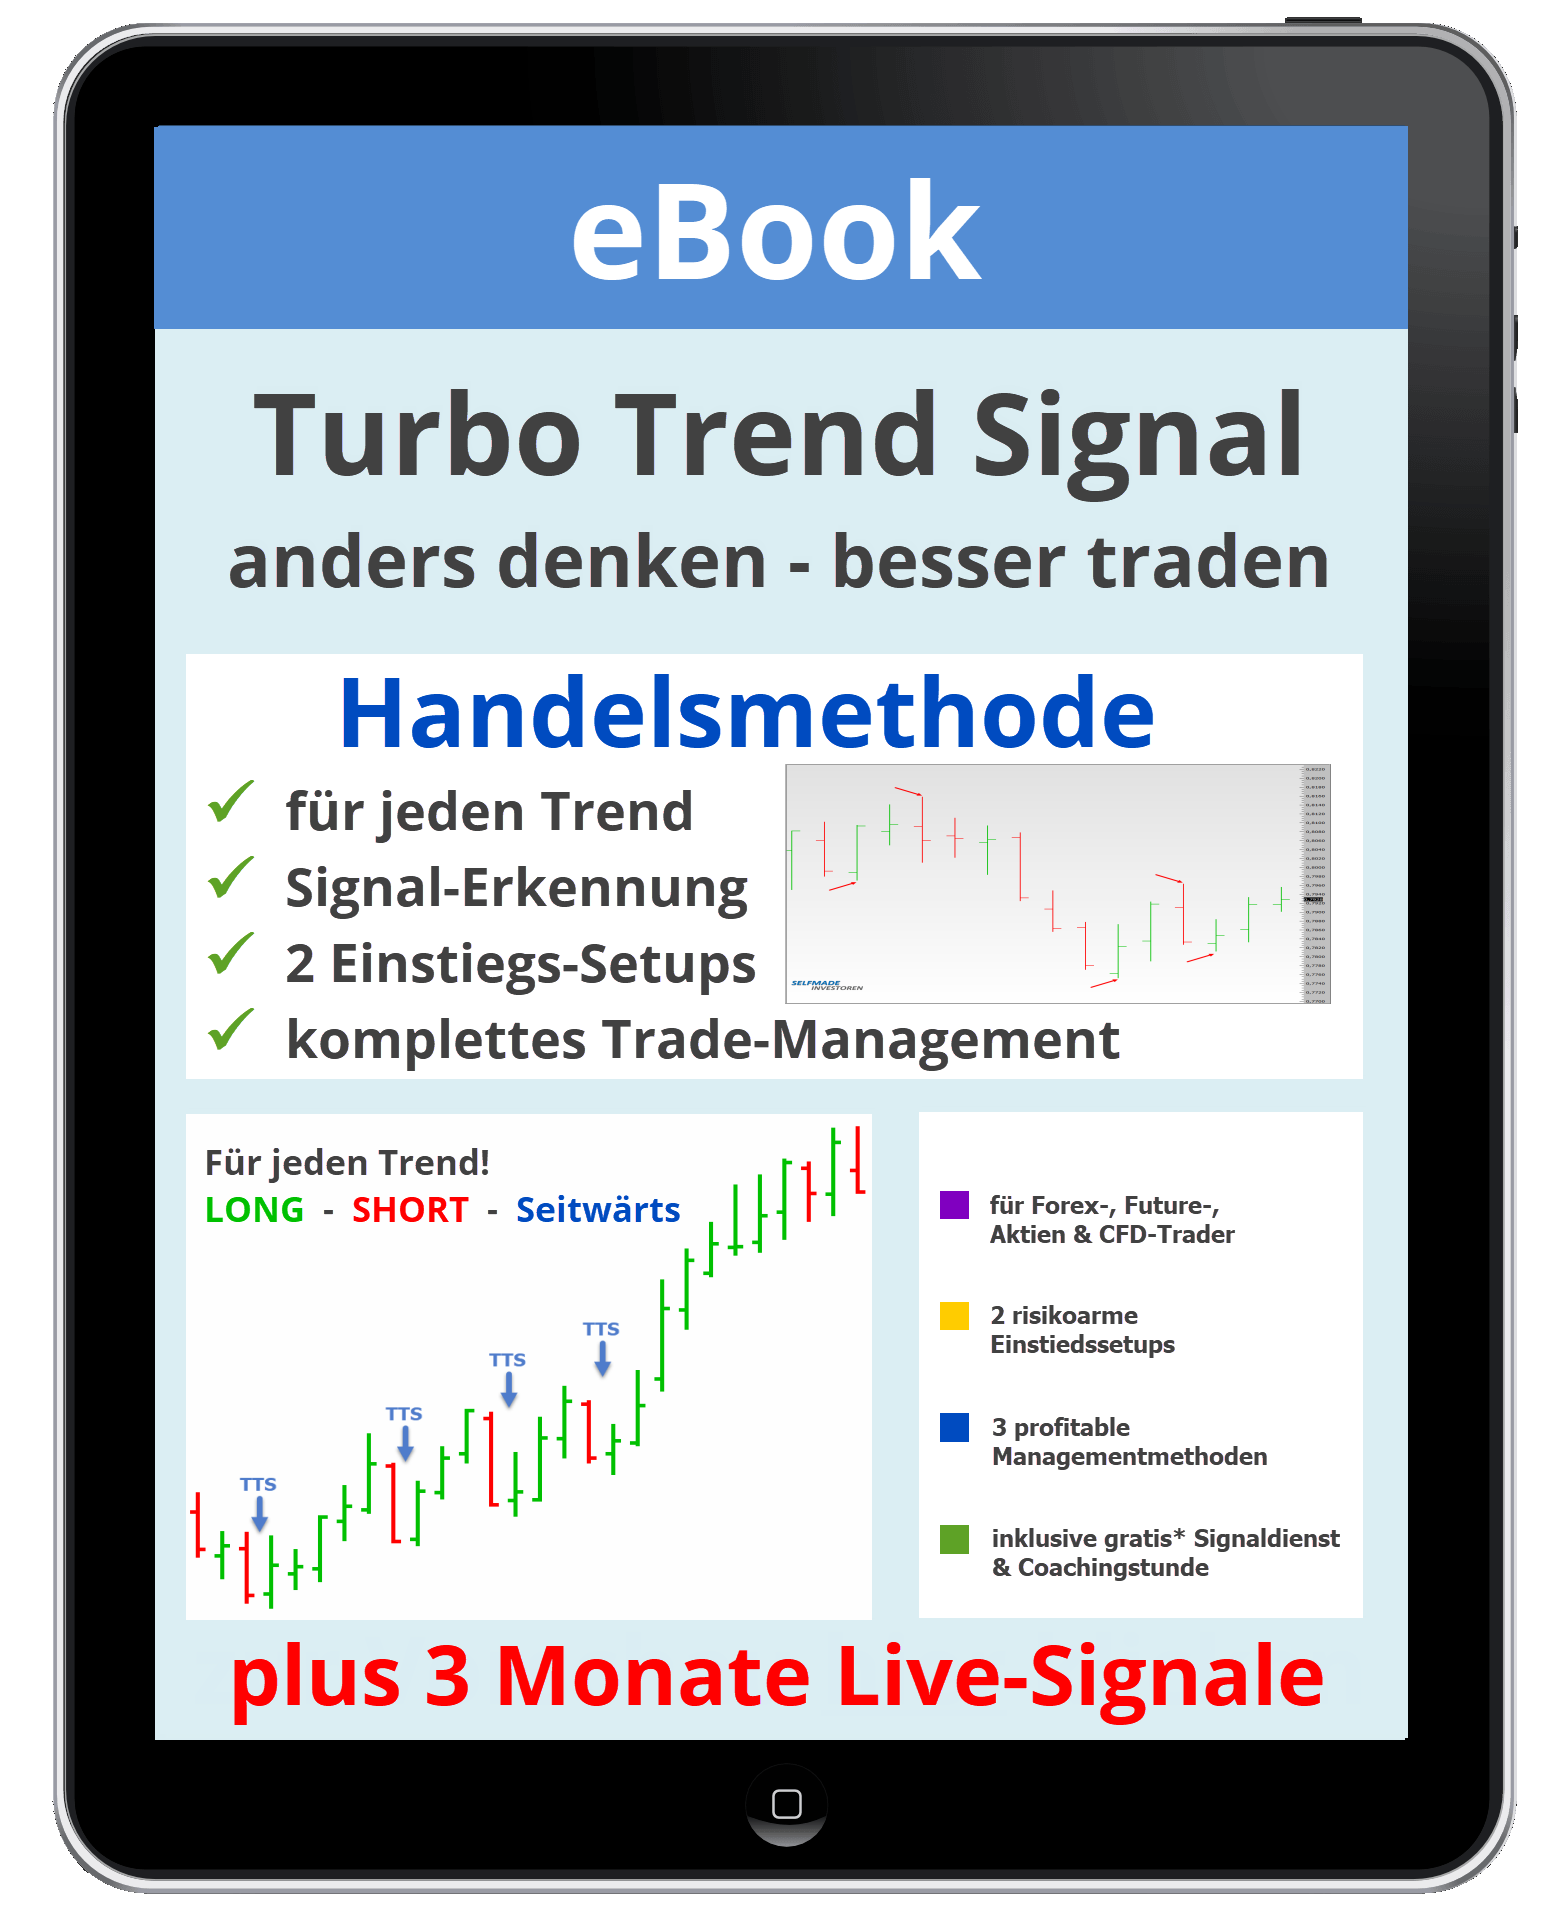 eBook Turbo Trend Signal